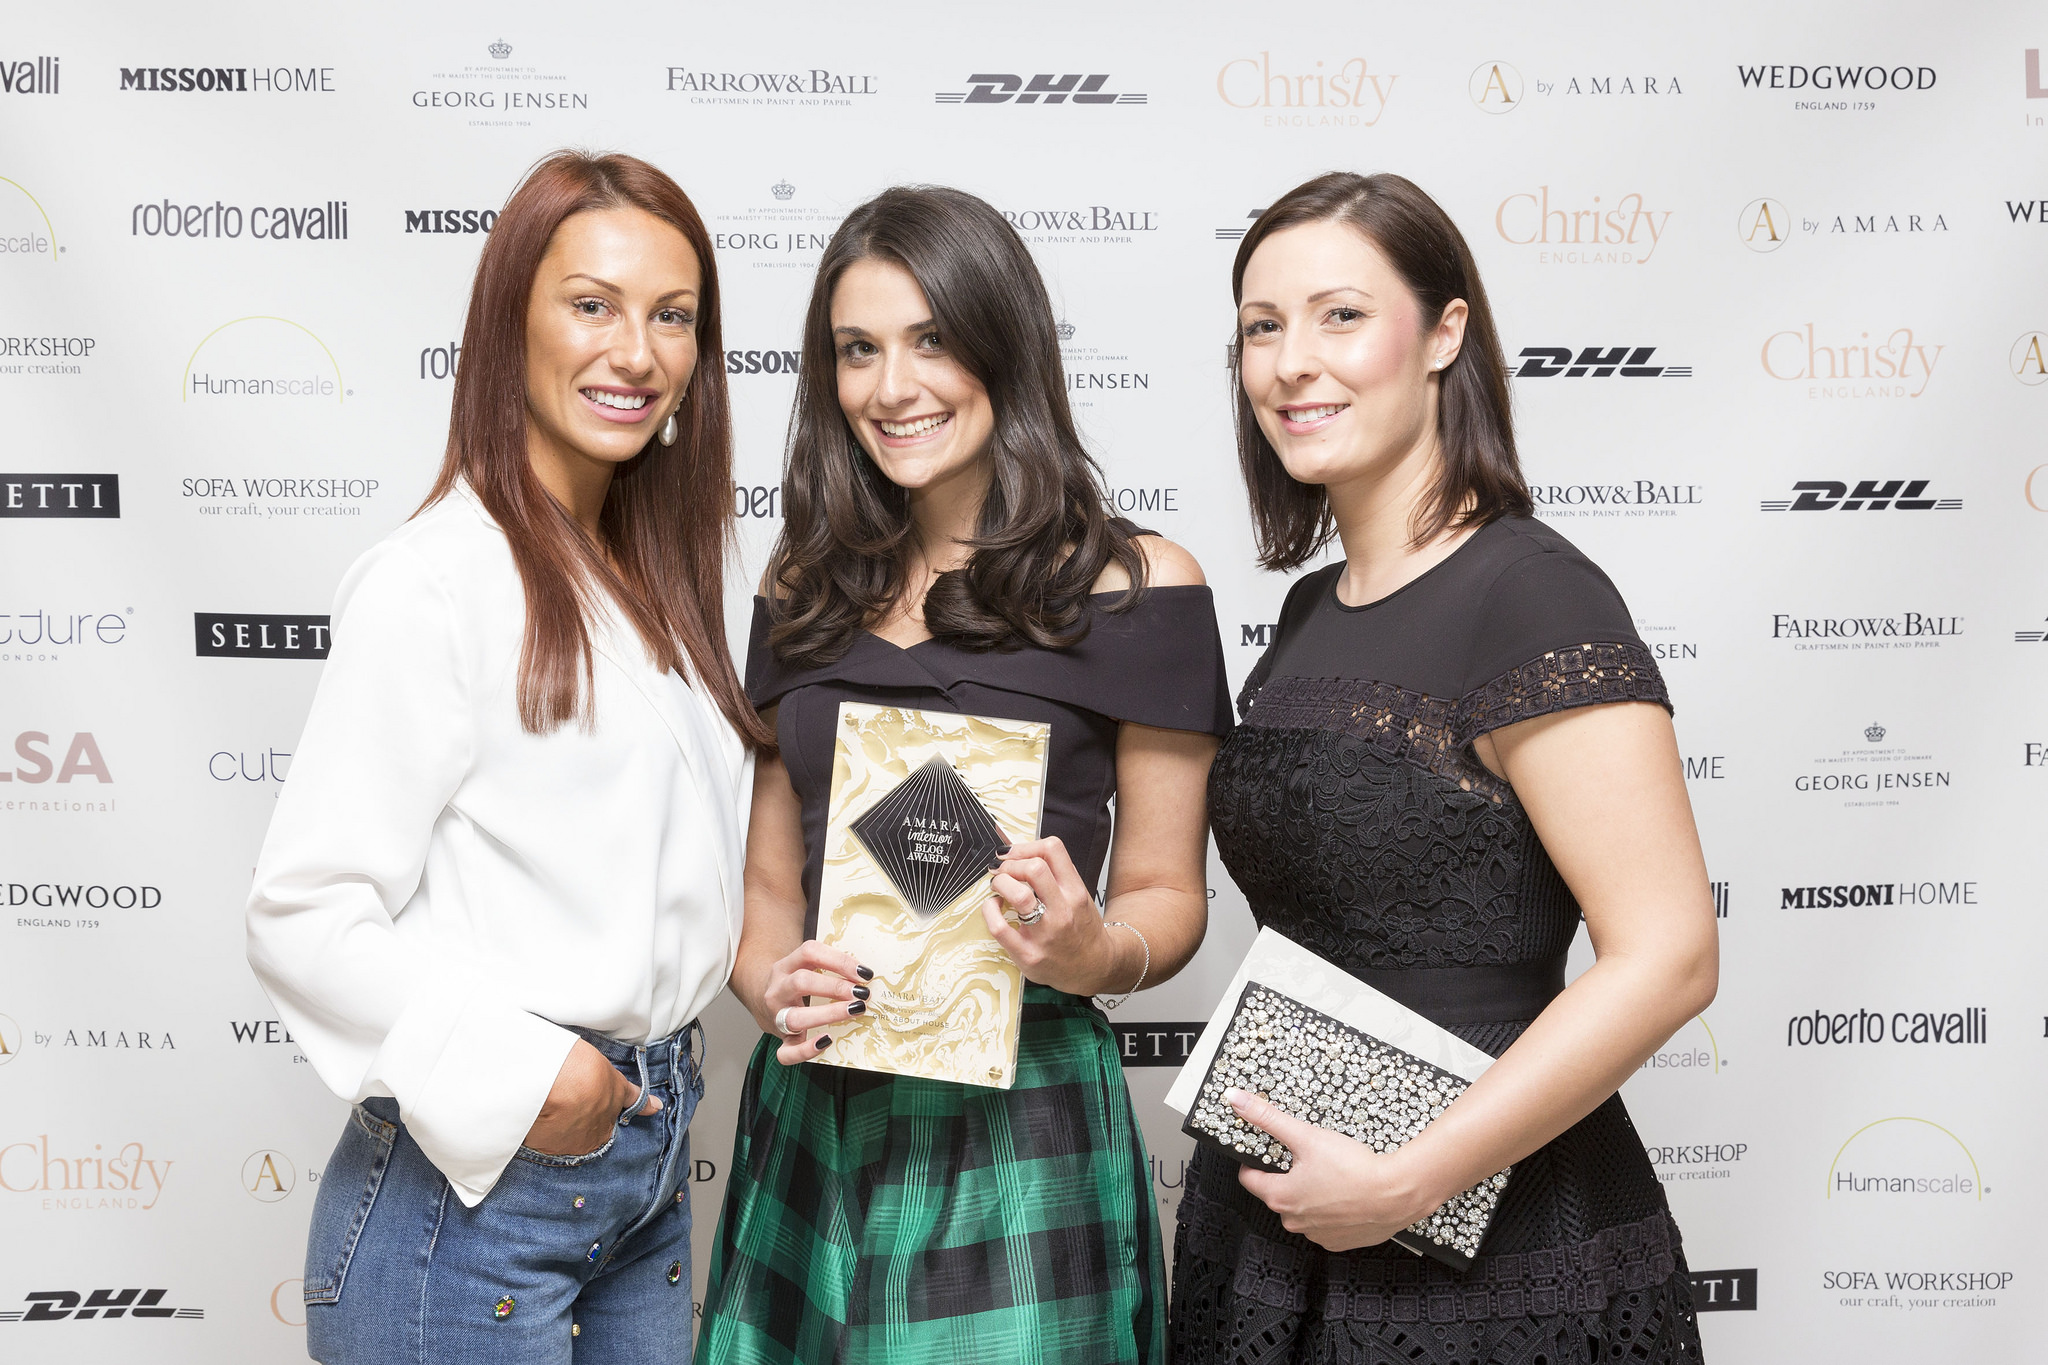 The Amara Interior Blog Awards '17 winners' photo. It was a total honour to attend such a prestigious and glamorous industry event. I am so delighted to have won 'Best Newcomer Blog' and thank you for all the support! #iba17